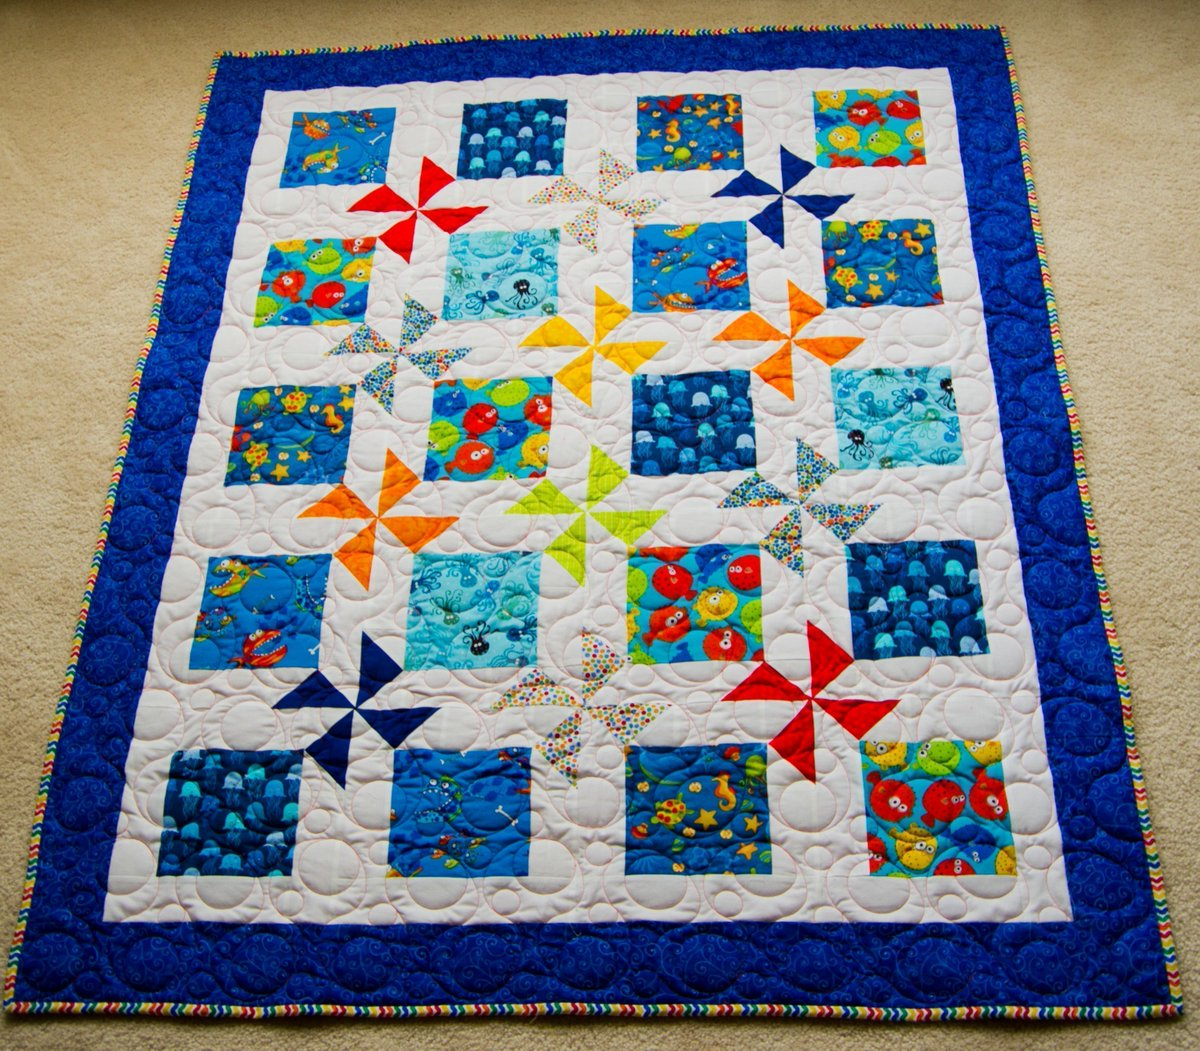 #Bright #Fun #Handmade #Quilts and #Giftideas Check out this #Toddler #ModernQuilt Give a Gift that will last years!  http:// buff.ly/2ttqBcF  &nbsp;  <br>http://pic.twitter.com/3DJRgZvA69